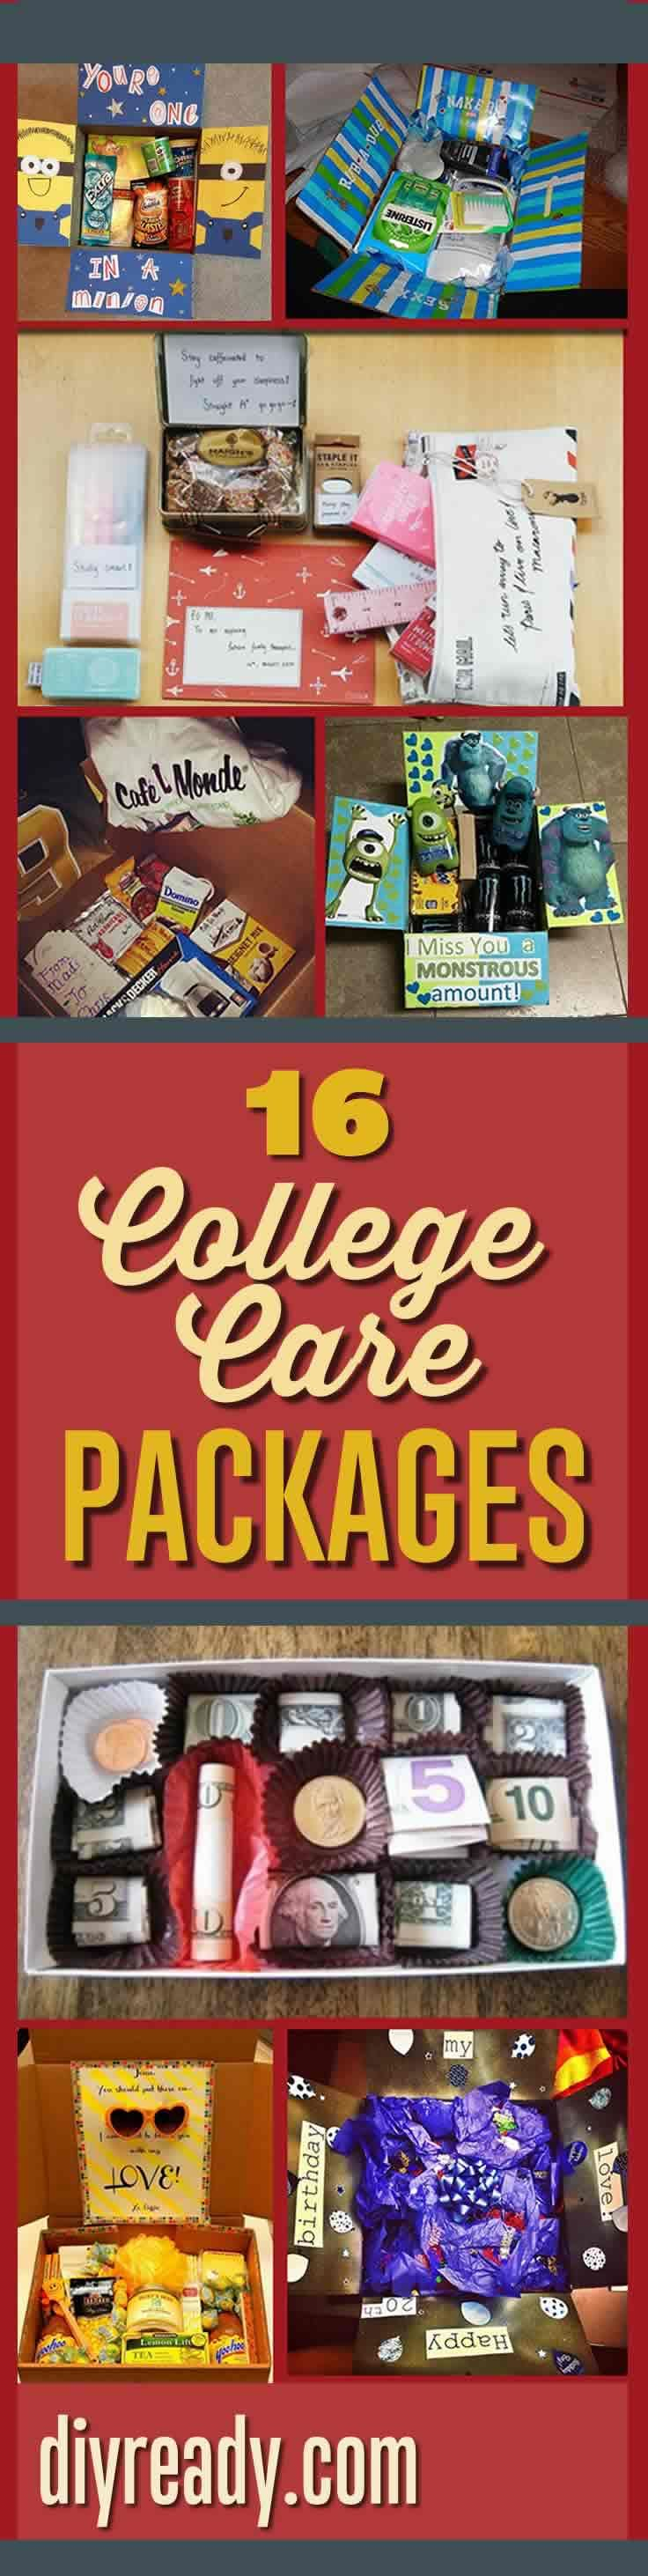 16 Cool College Care Package Ideas   Give these crafty DIY care packages a try for gifts >> http://diyready.com/16-cool-college-care-package-ideas/ #DIYReady #diycrafts